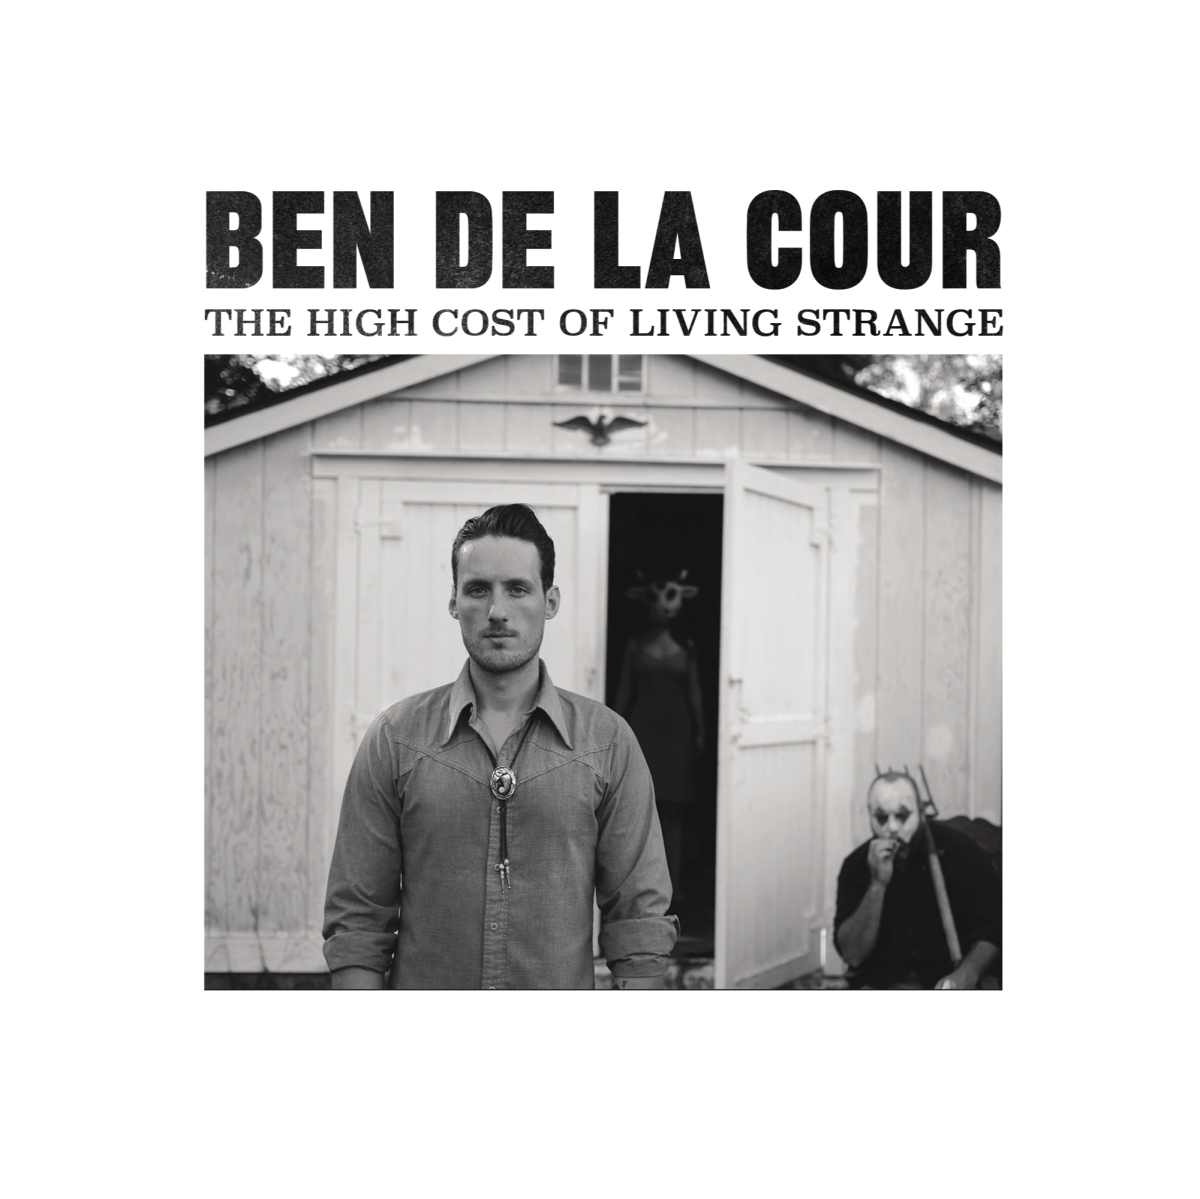 The High Cost of Living Strange - Ben De La Cour (reviewed by T. Bebedor)